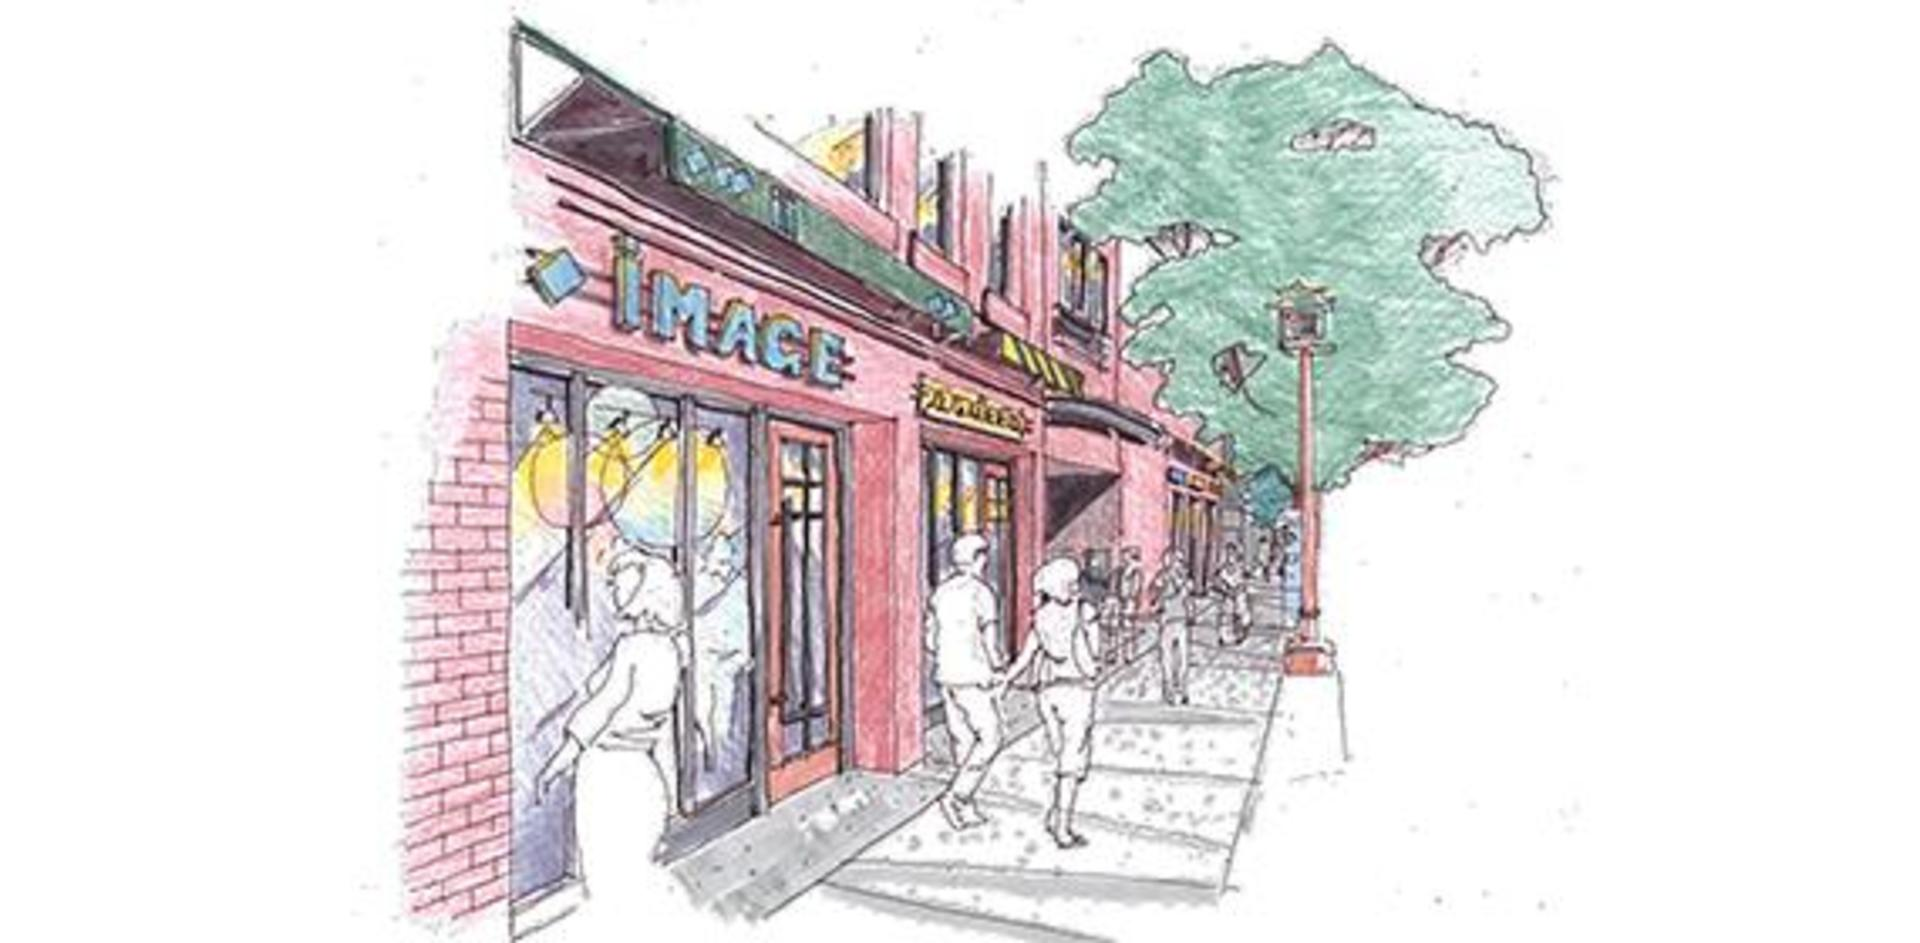 595_pandora_victoria_rendering at The Abacus (595 Pandora Avenue, Downtown and Harris Green, Victoria)